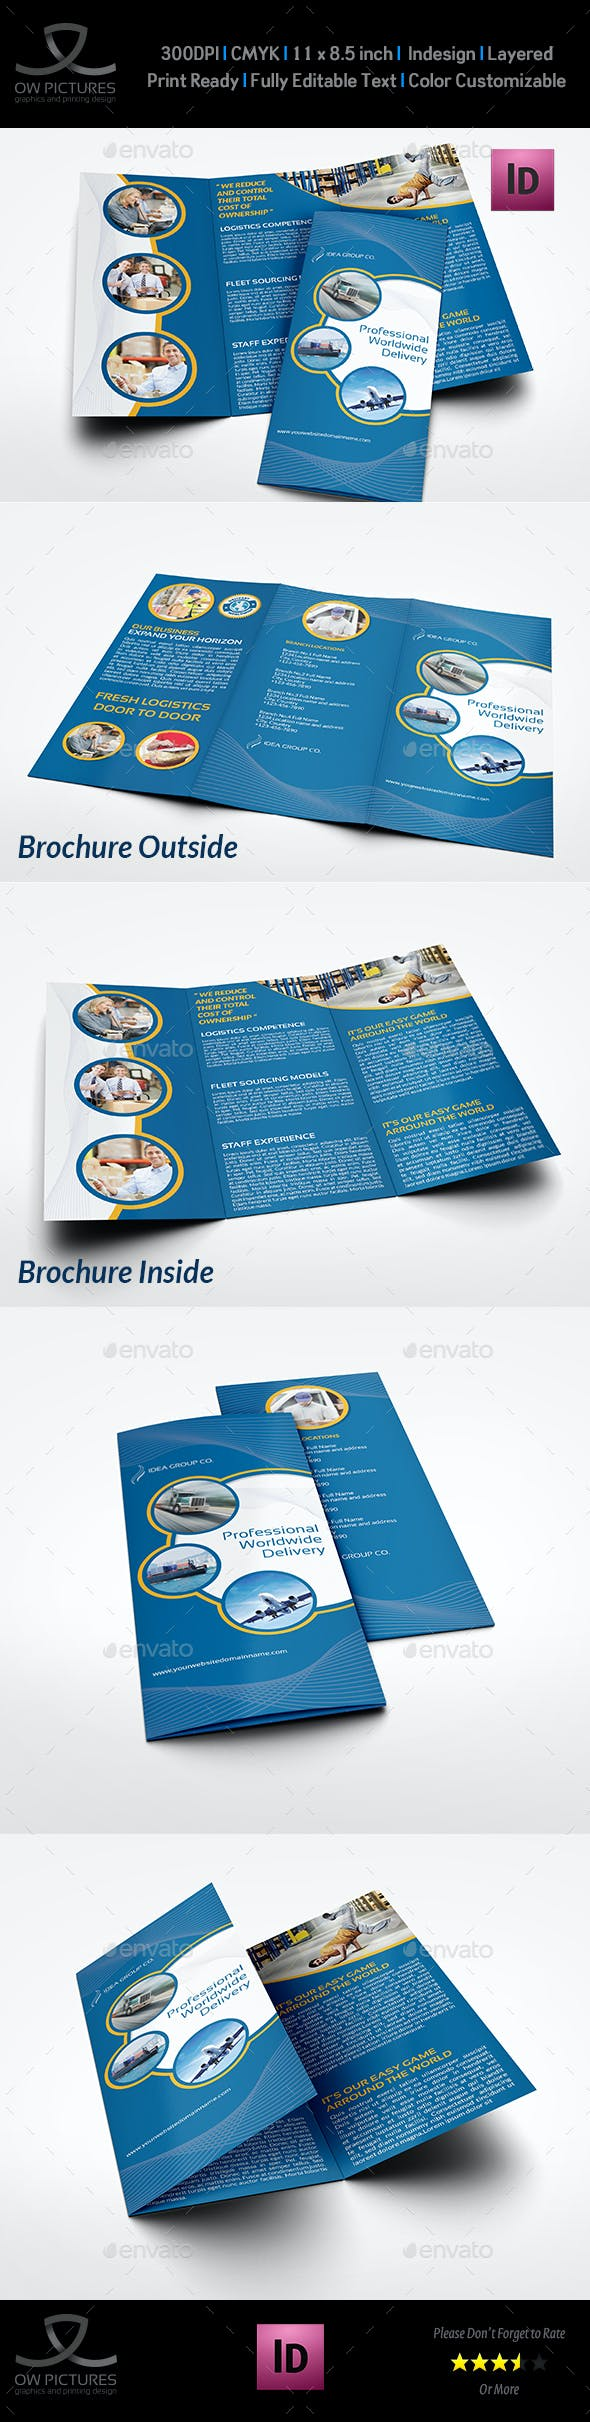 logistic services tri fold brochure template vol 3 by owpictures